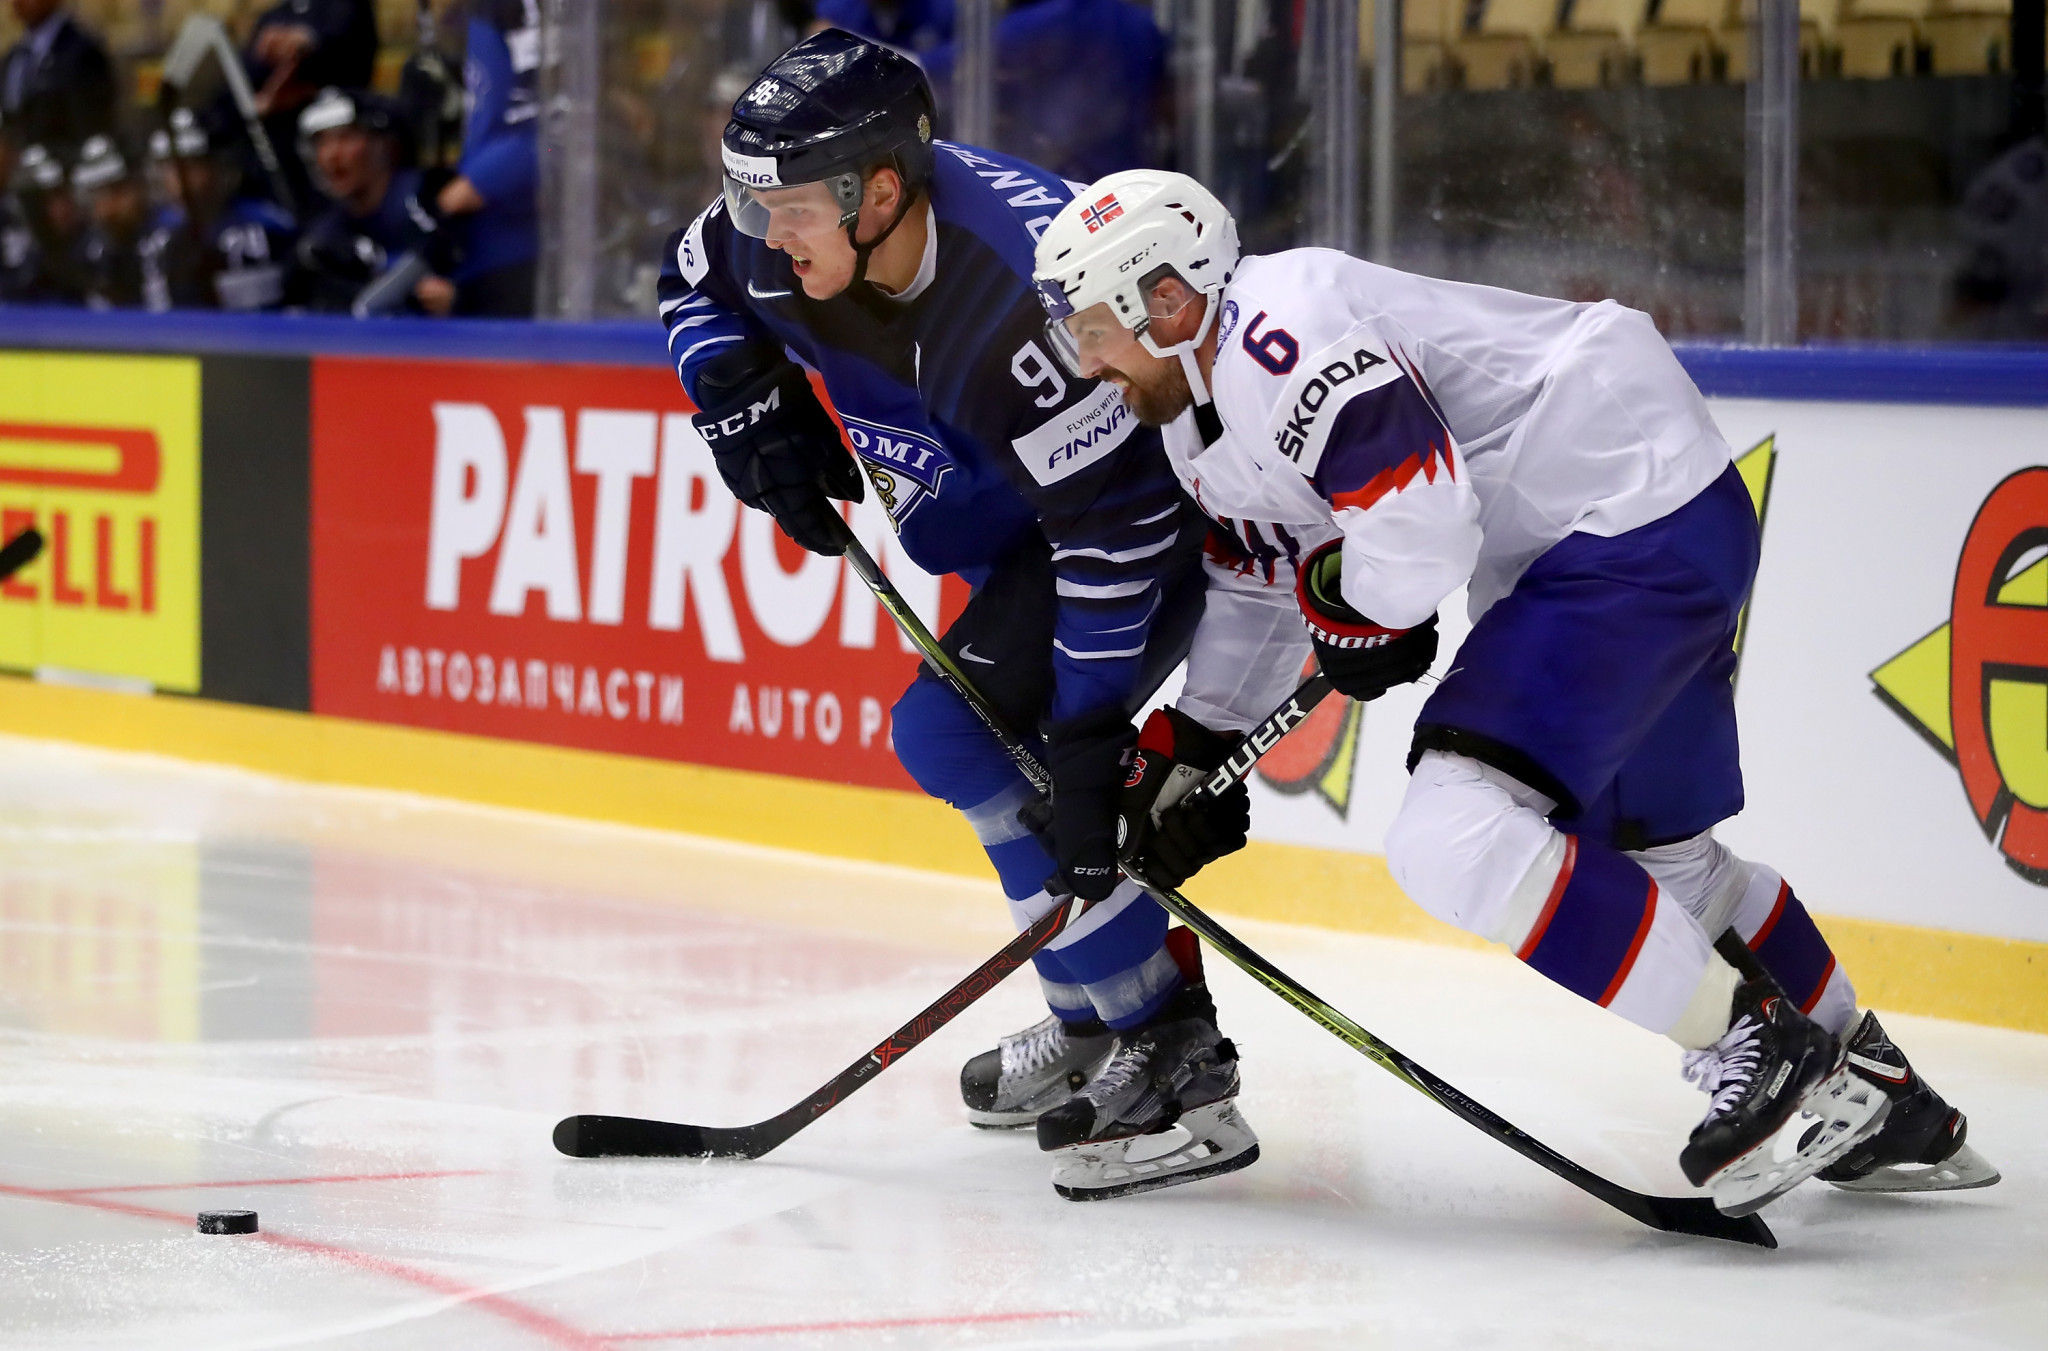 Finland go top of Group B with comfortable win over Norway at IIHF World Championship